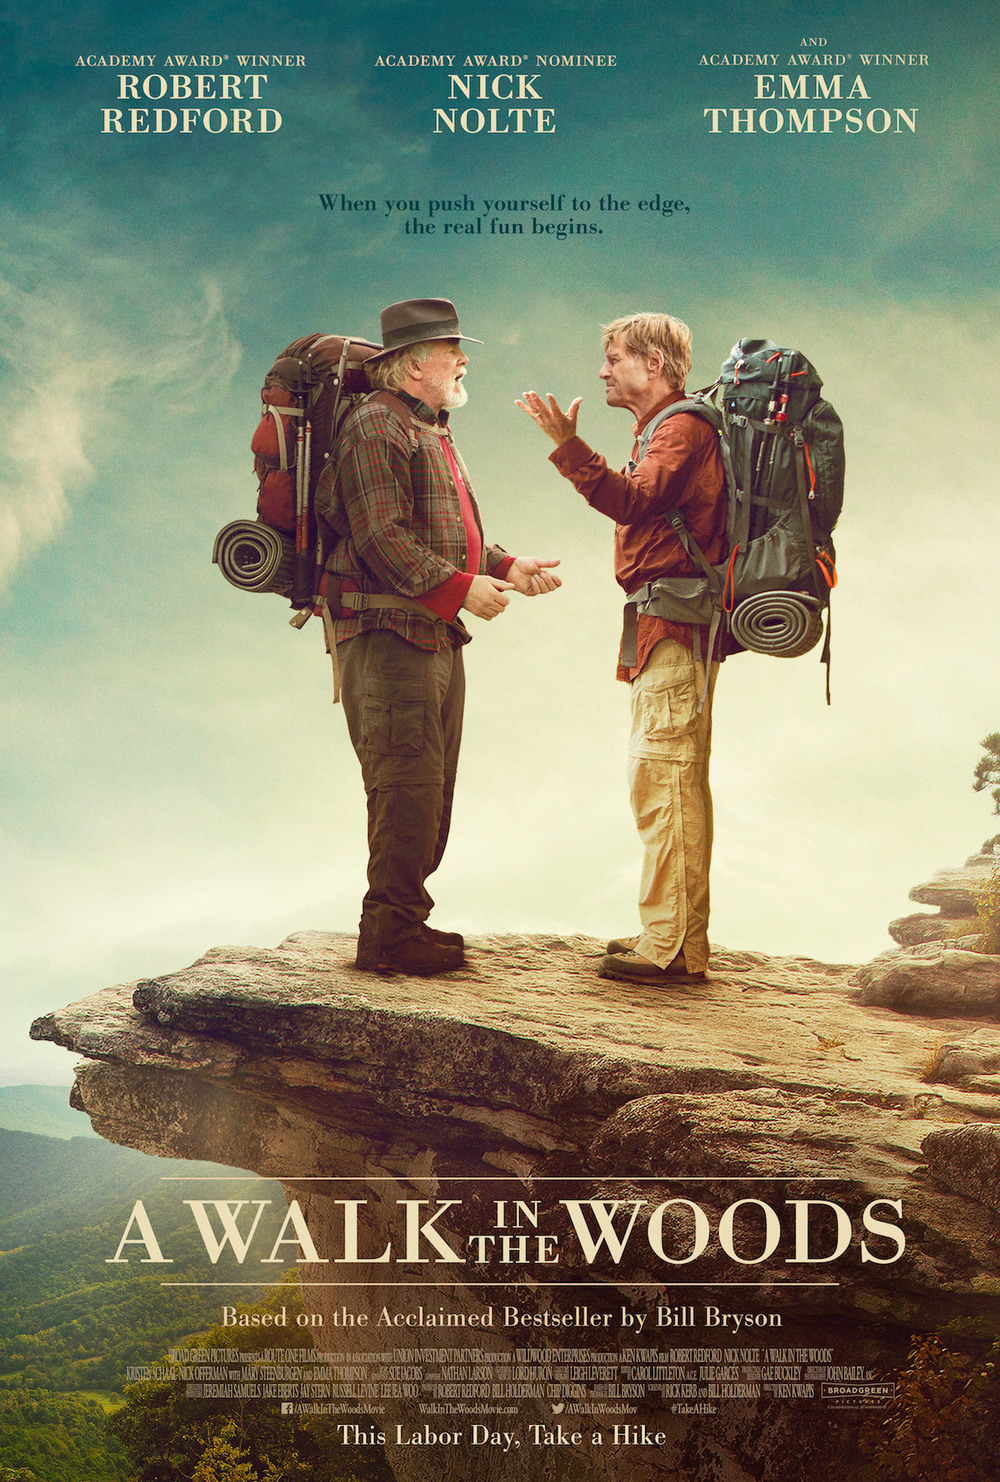 A Walk in the Woods   (2015) dir. Ken Kwapis Rated: R image: ©2015  Broad Green Pictures